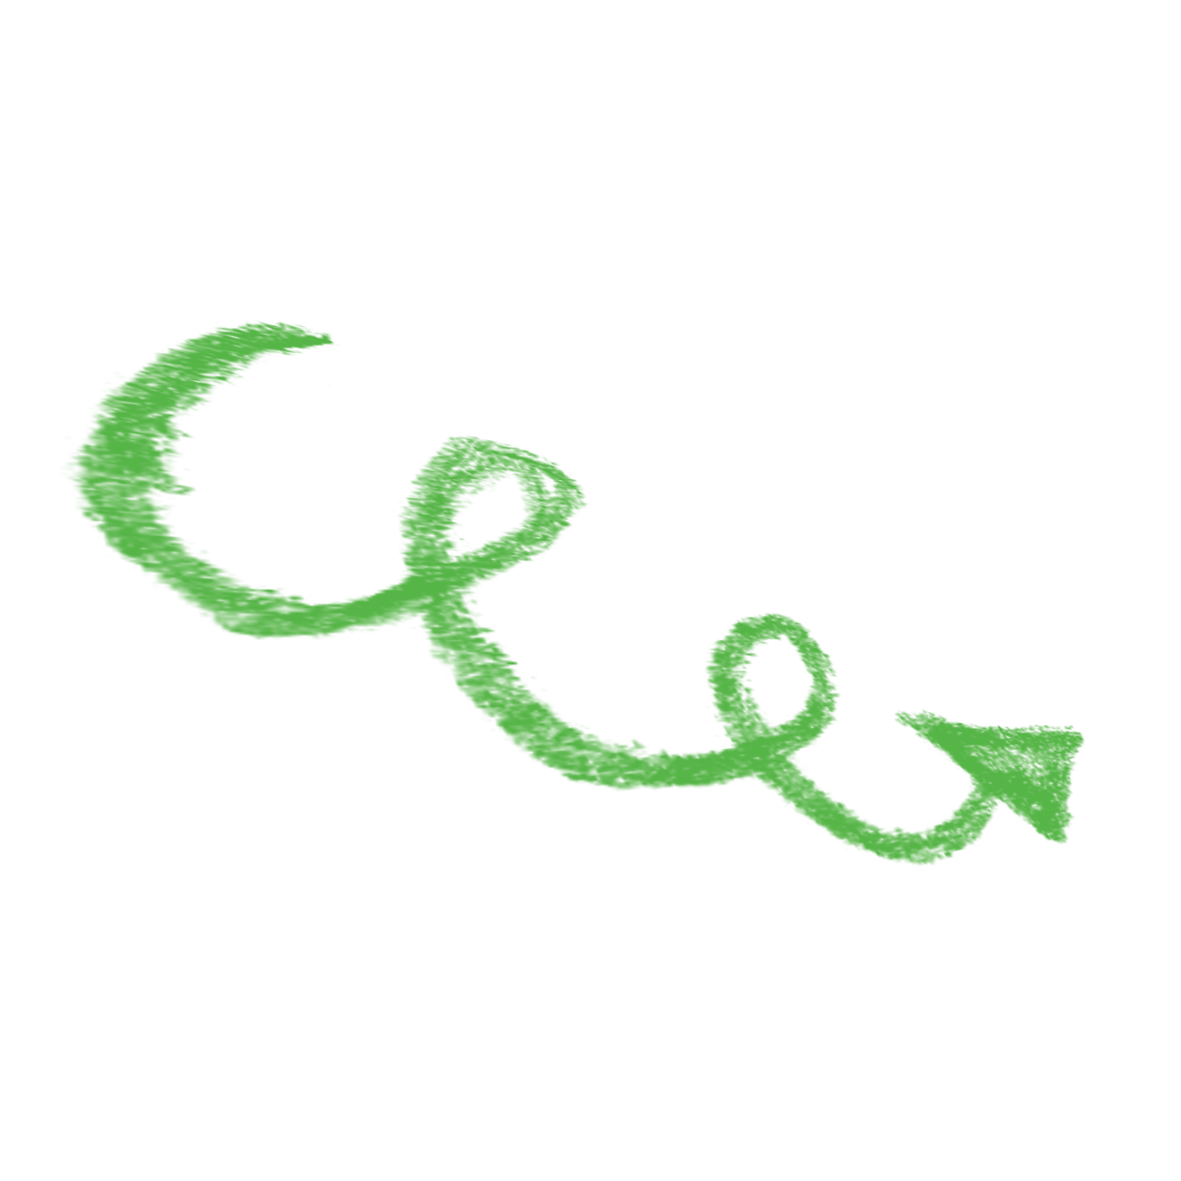 Chalk arrow png. Free green to pull